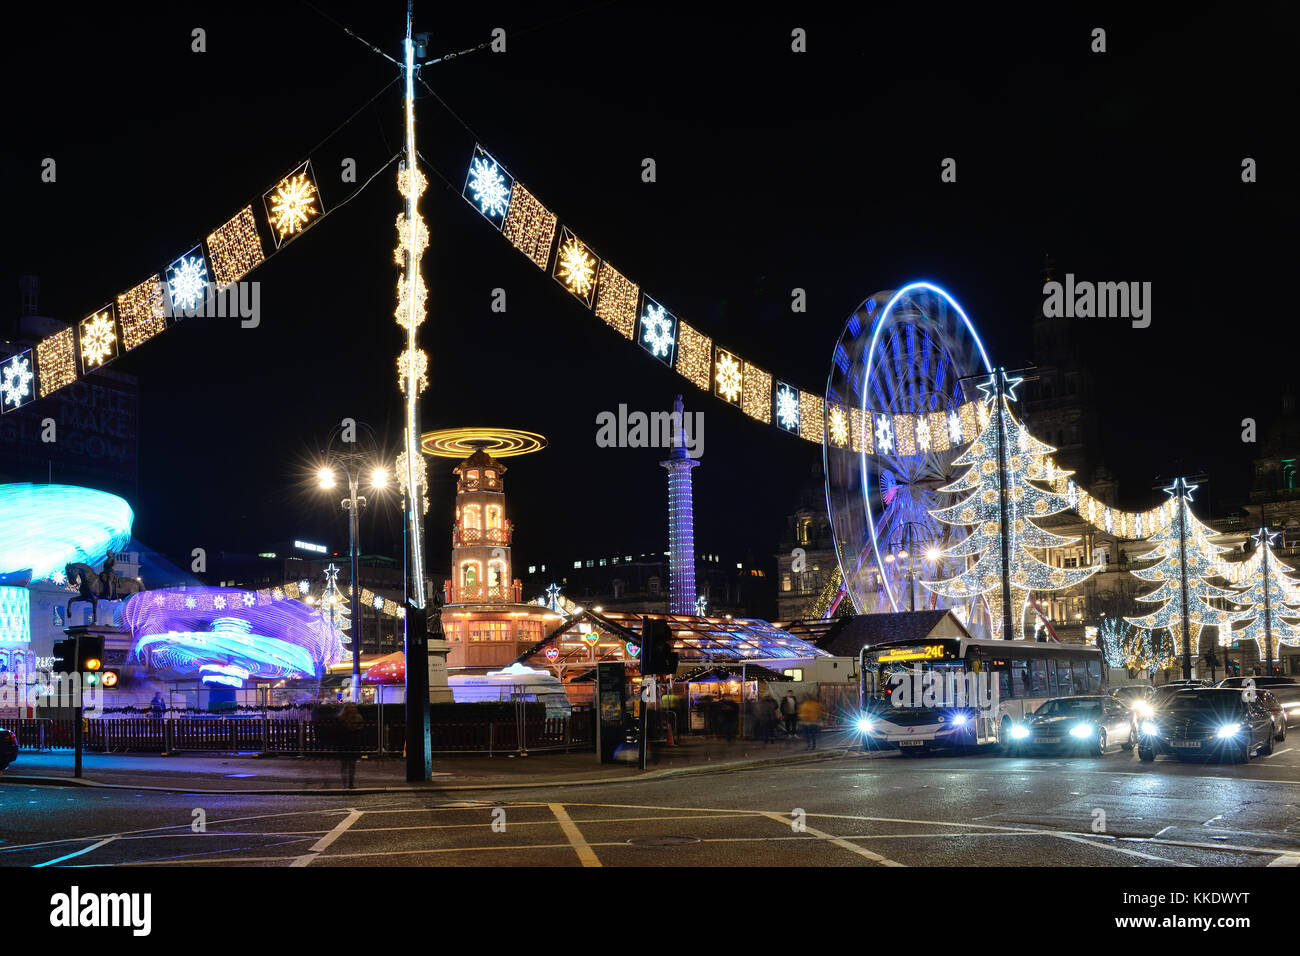 Glasgow, George Square Christmas lights and fairground attractions Stock Photo